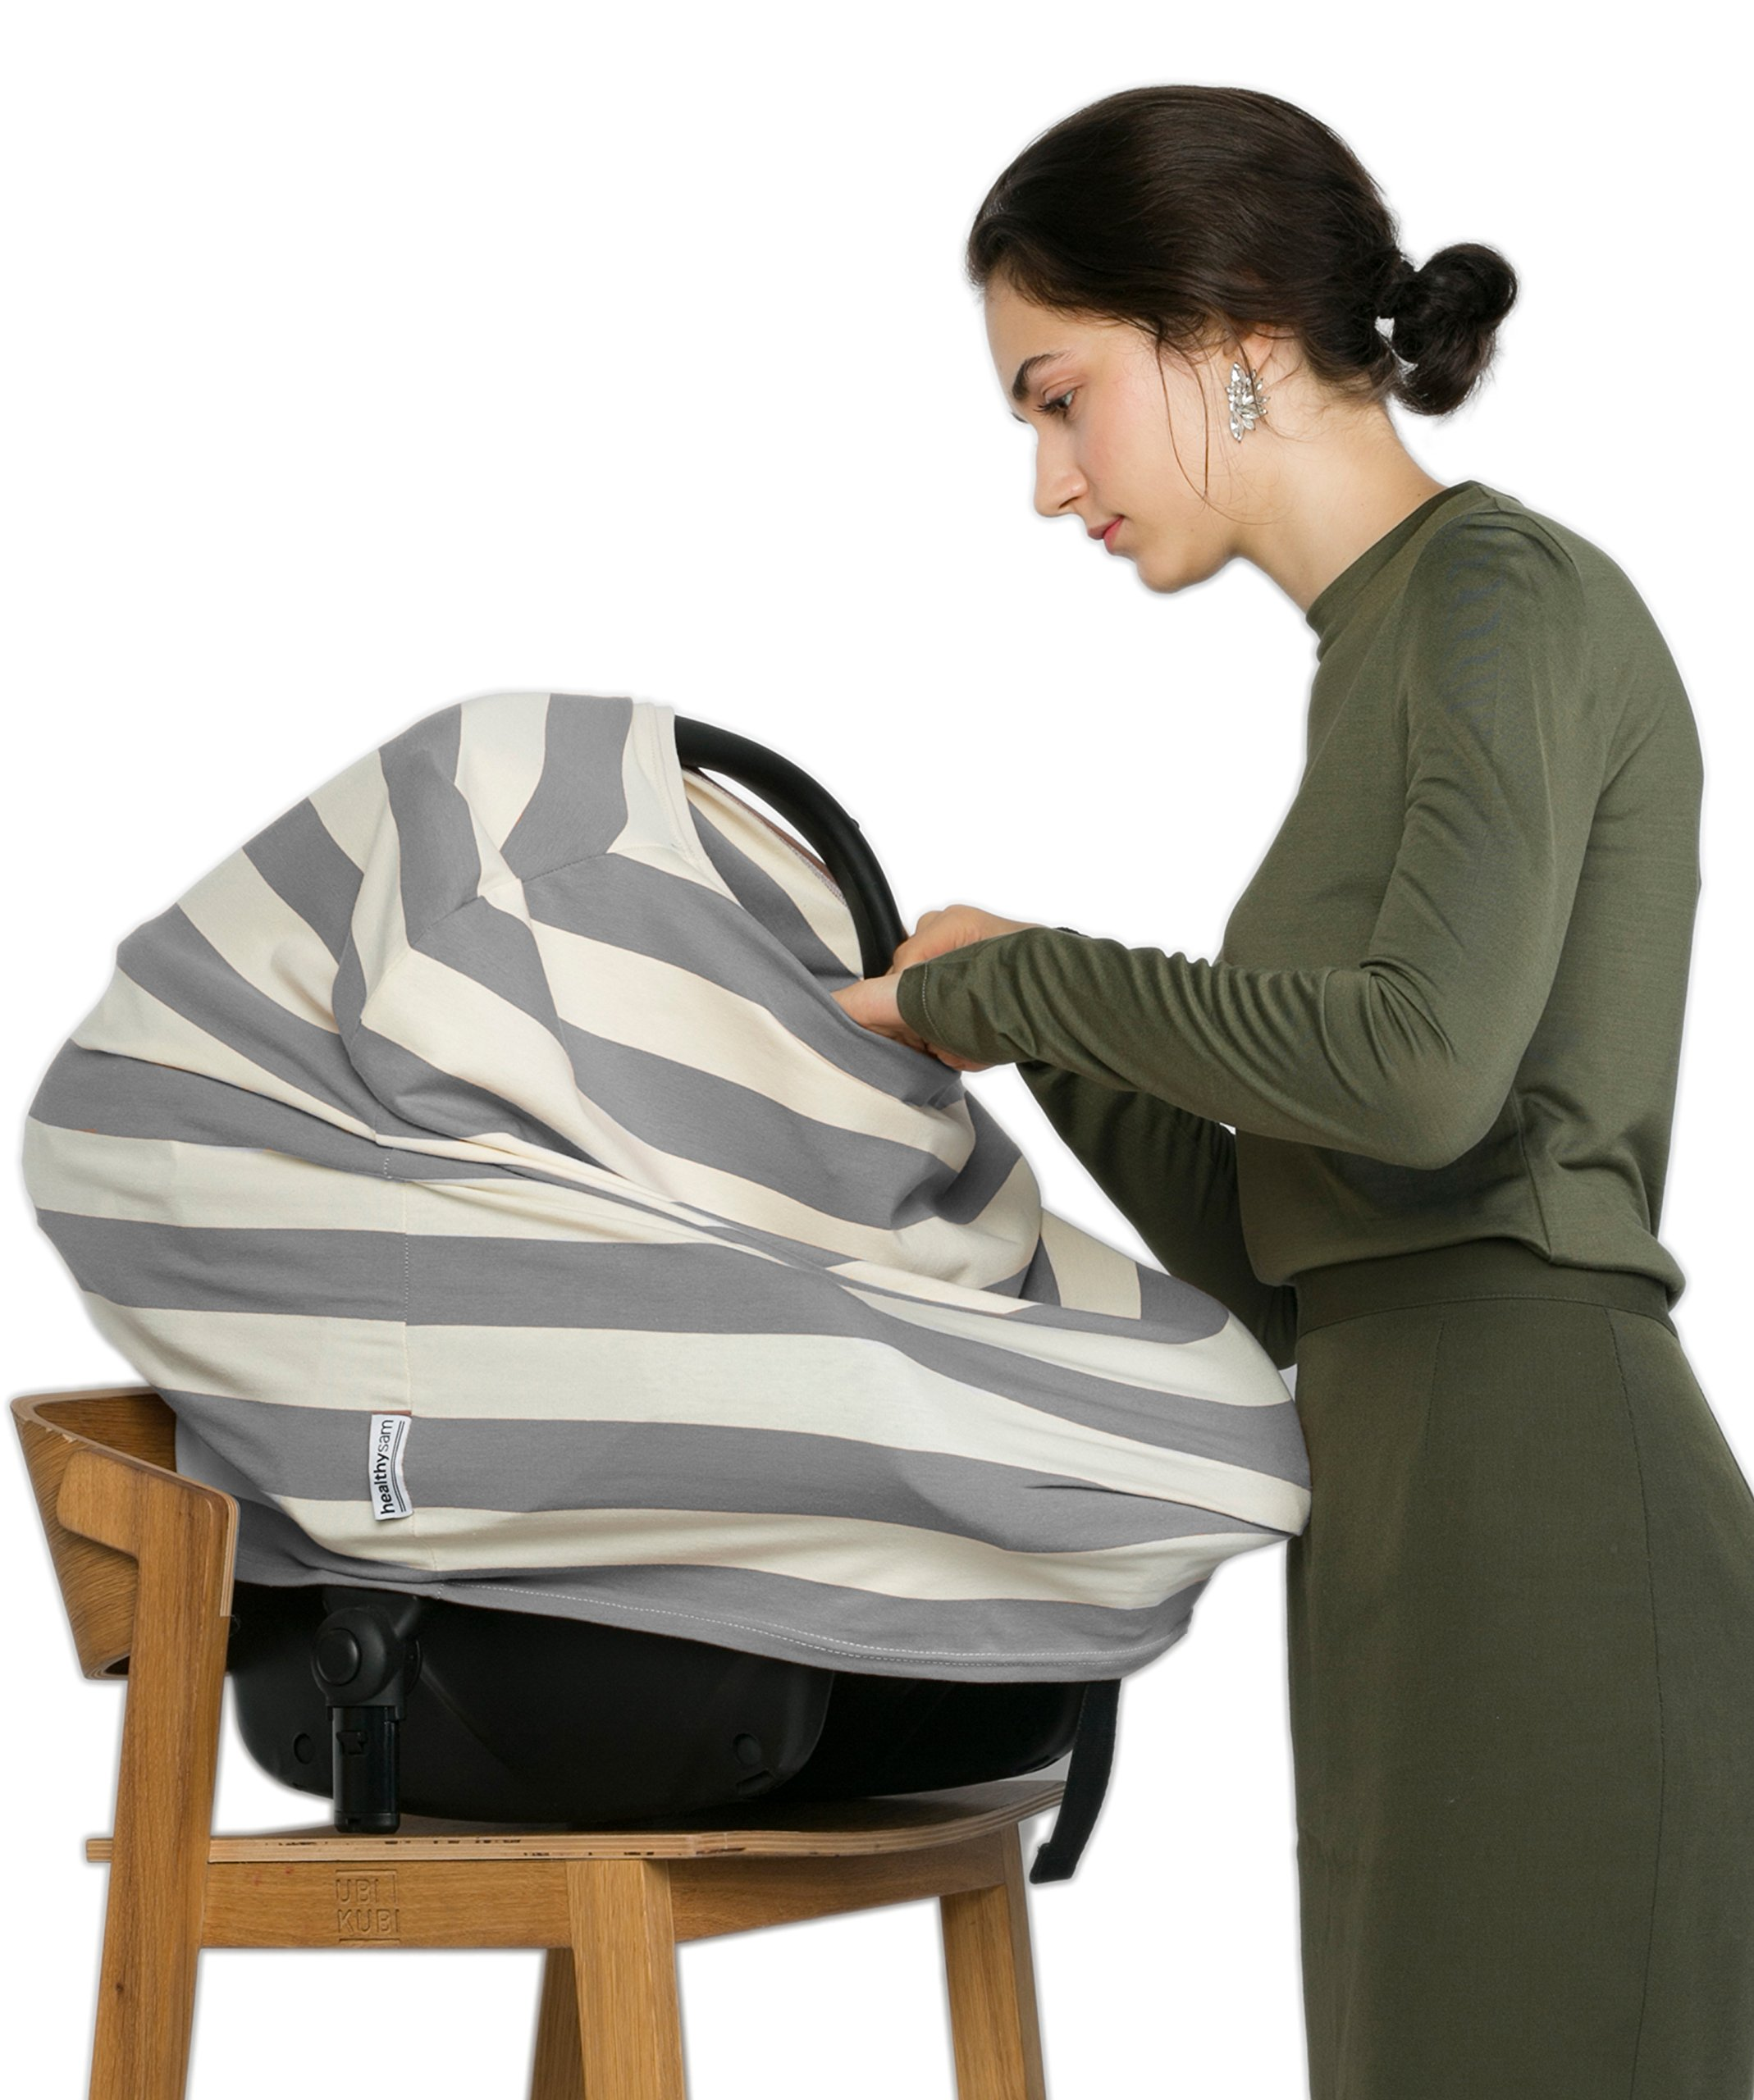 Breastfeeding Nursing Cover + 1 Burp Cloth by HealthySam - Baby Car Seat Covers - Shopping Cart, High Chair, Stroller and Carseat Canopy - Stretchy, Breathable Scarf and Shawl - Cotton - Grey Stripes